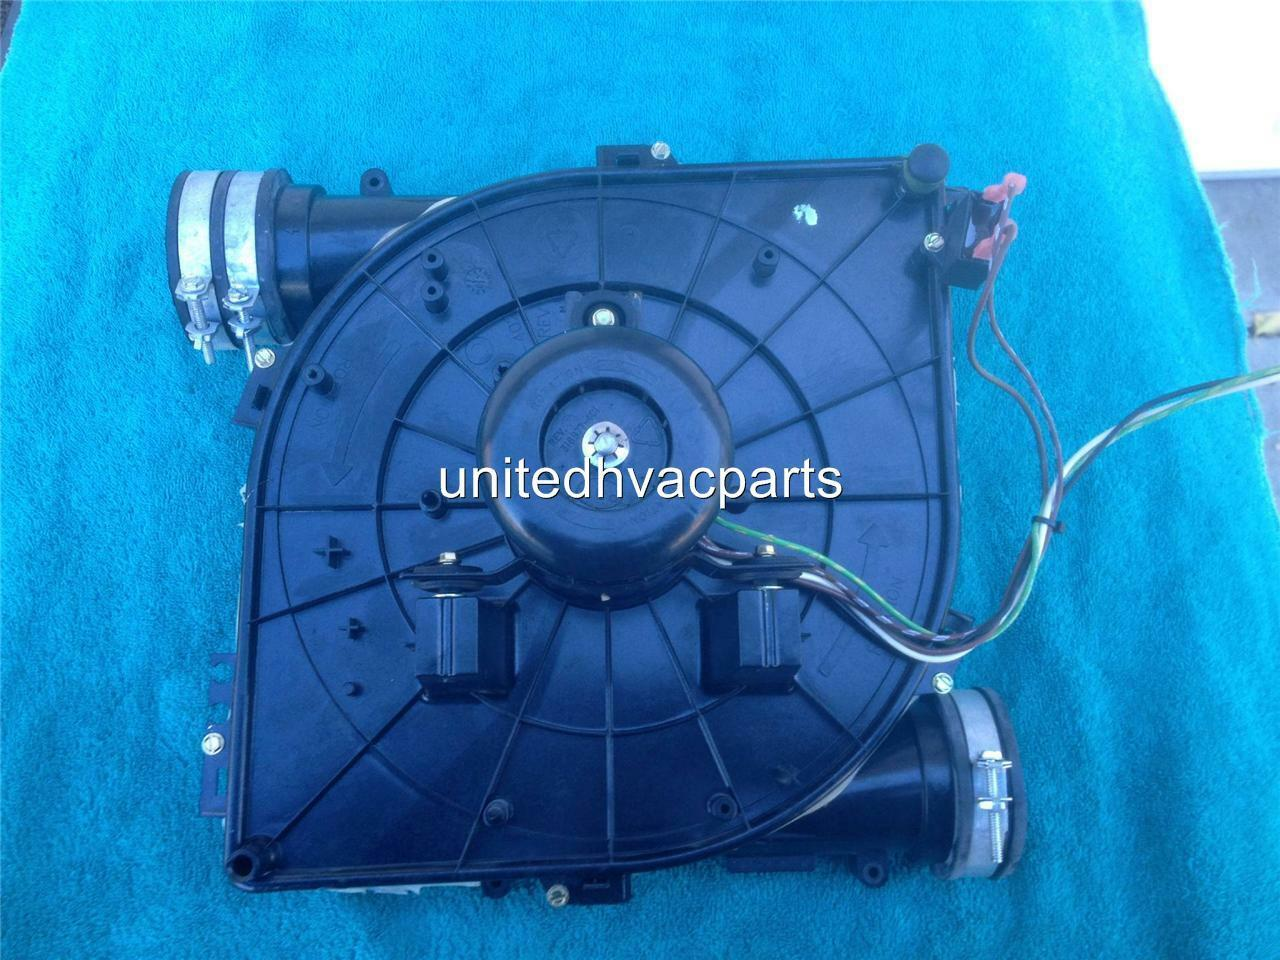 A O Smith Hc27cb119 Furnace Draft Inducer Motor Assembly Je1d013n Carrier Bryant Hk42fz009 Control Circuit Board 1012940l Ao Jed013n